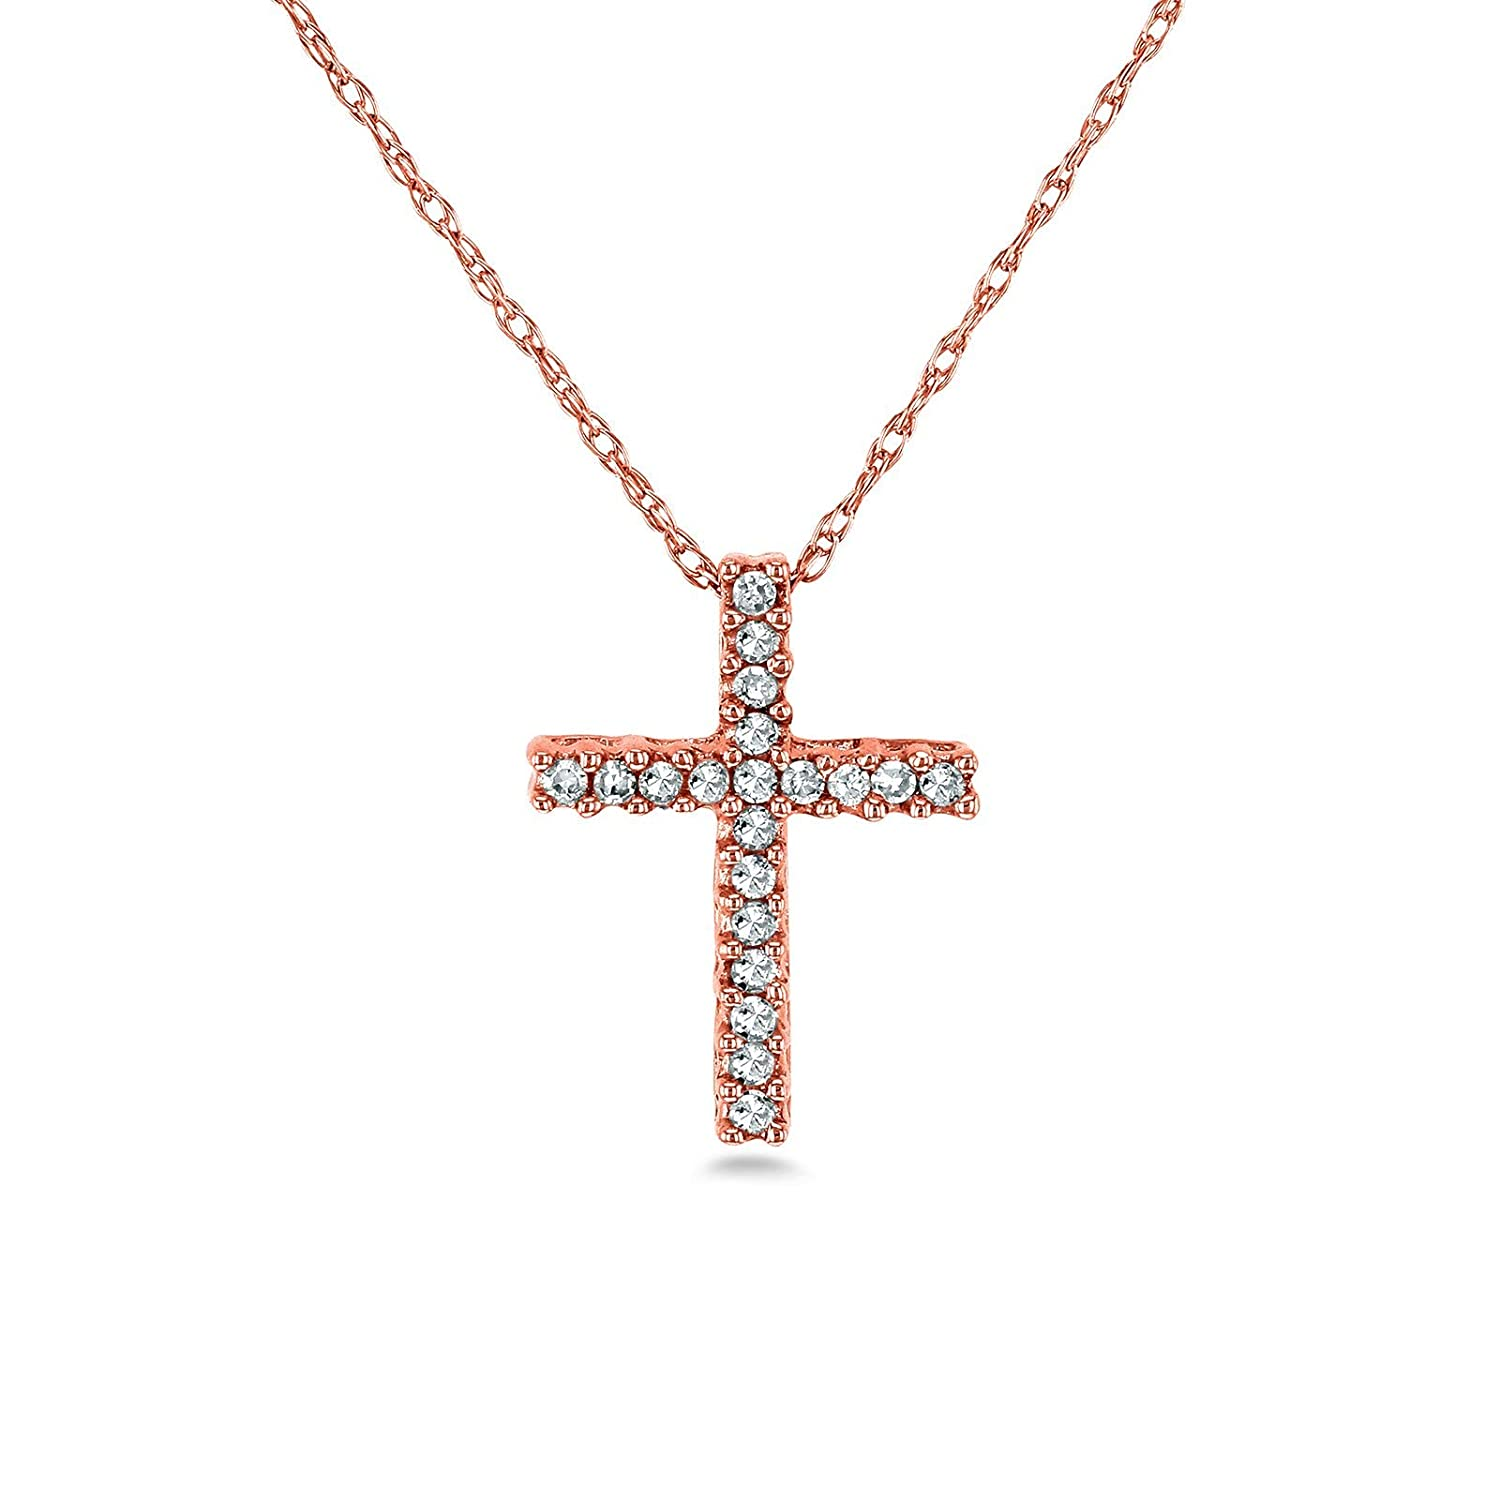 Diamond Cross Necklace 1 10 Carat TDW Shared Prongs in 10k Gold